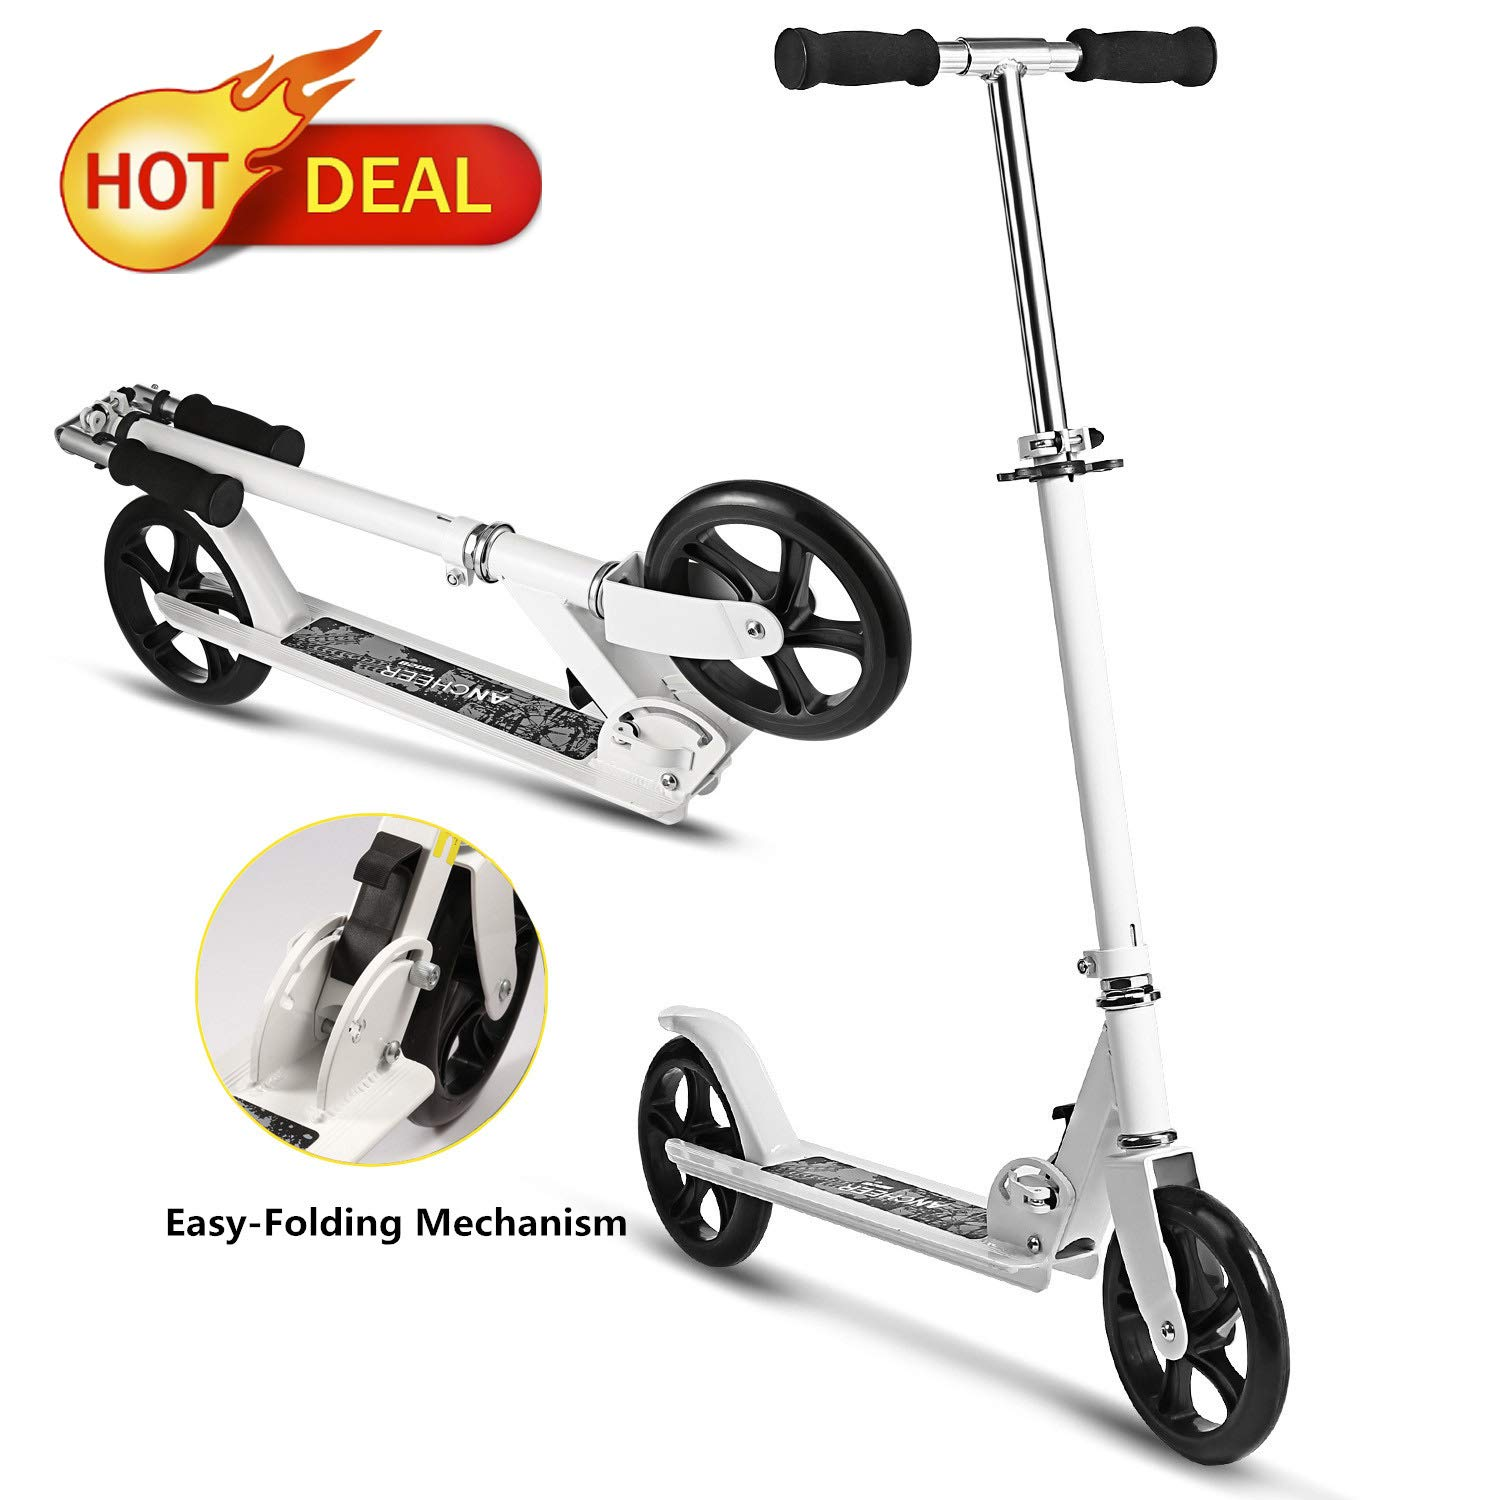 Juane Folding Kick Scooter with 3 Levels Adjustable Height 8 inches Big Wheels Rear Fender Brake Max Load 200LB Age 12 up for Adults Teens Kids (White) by Juane